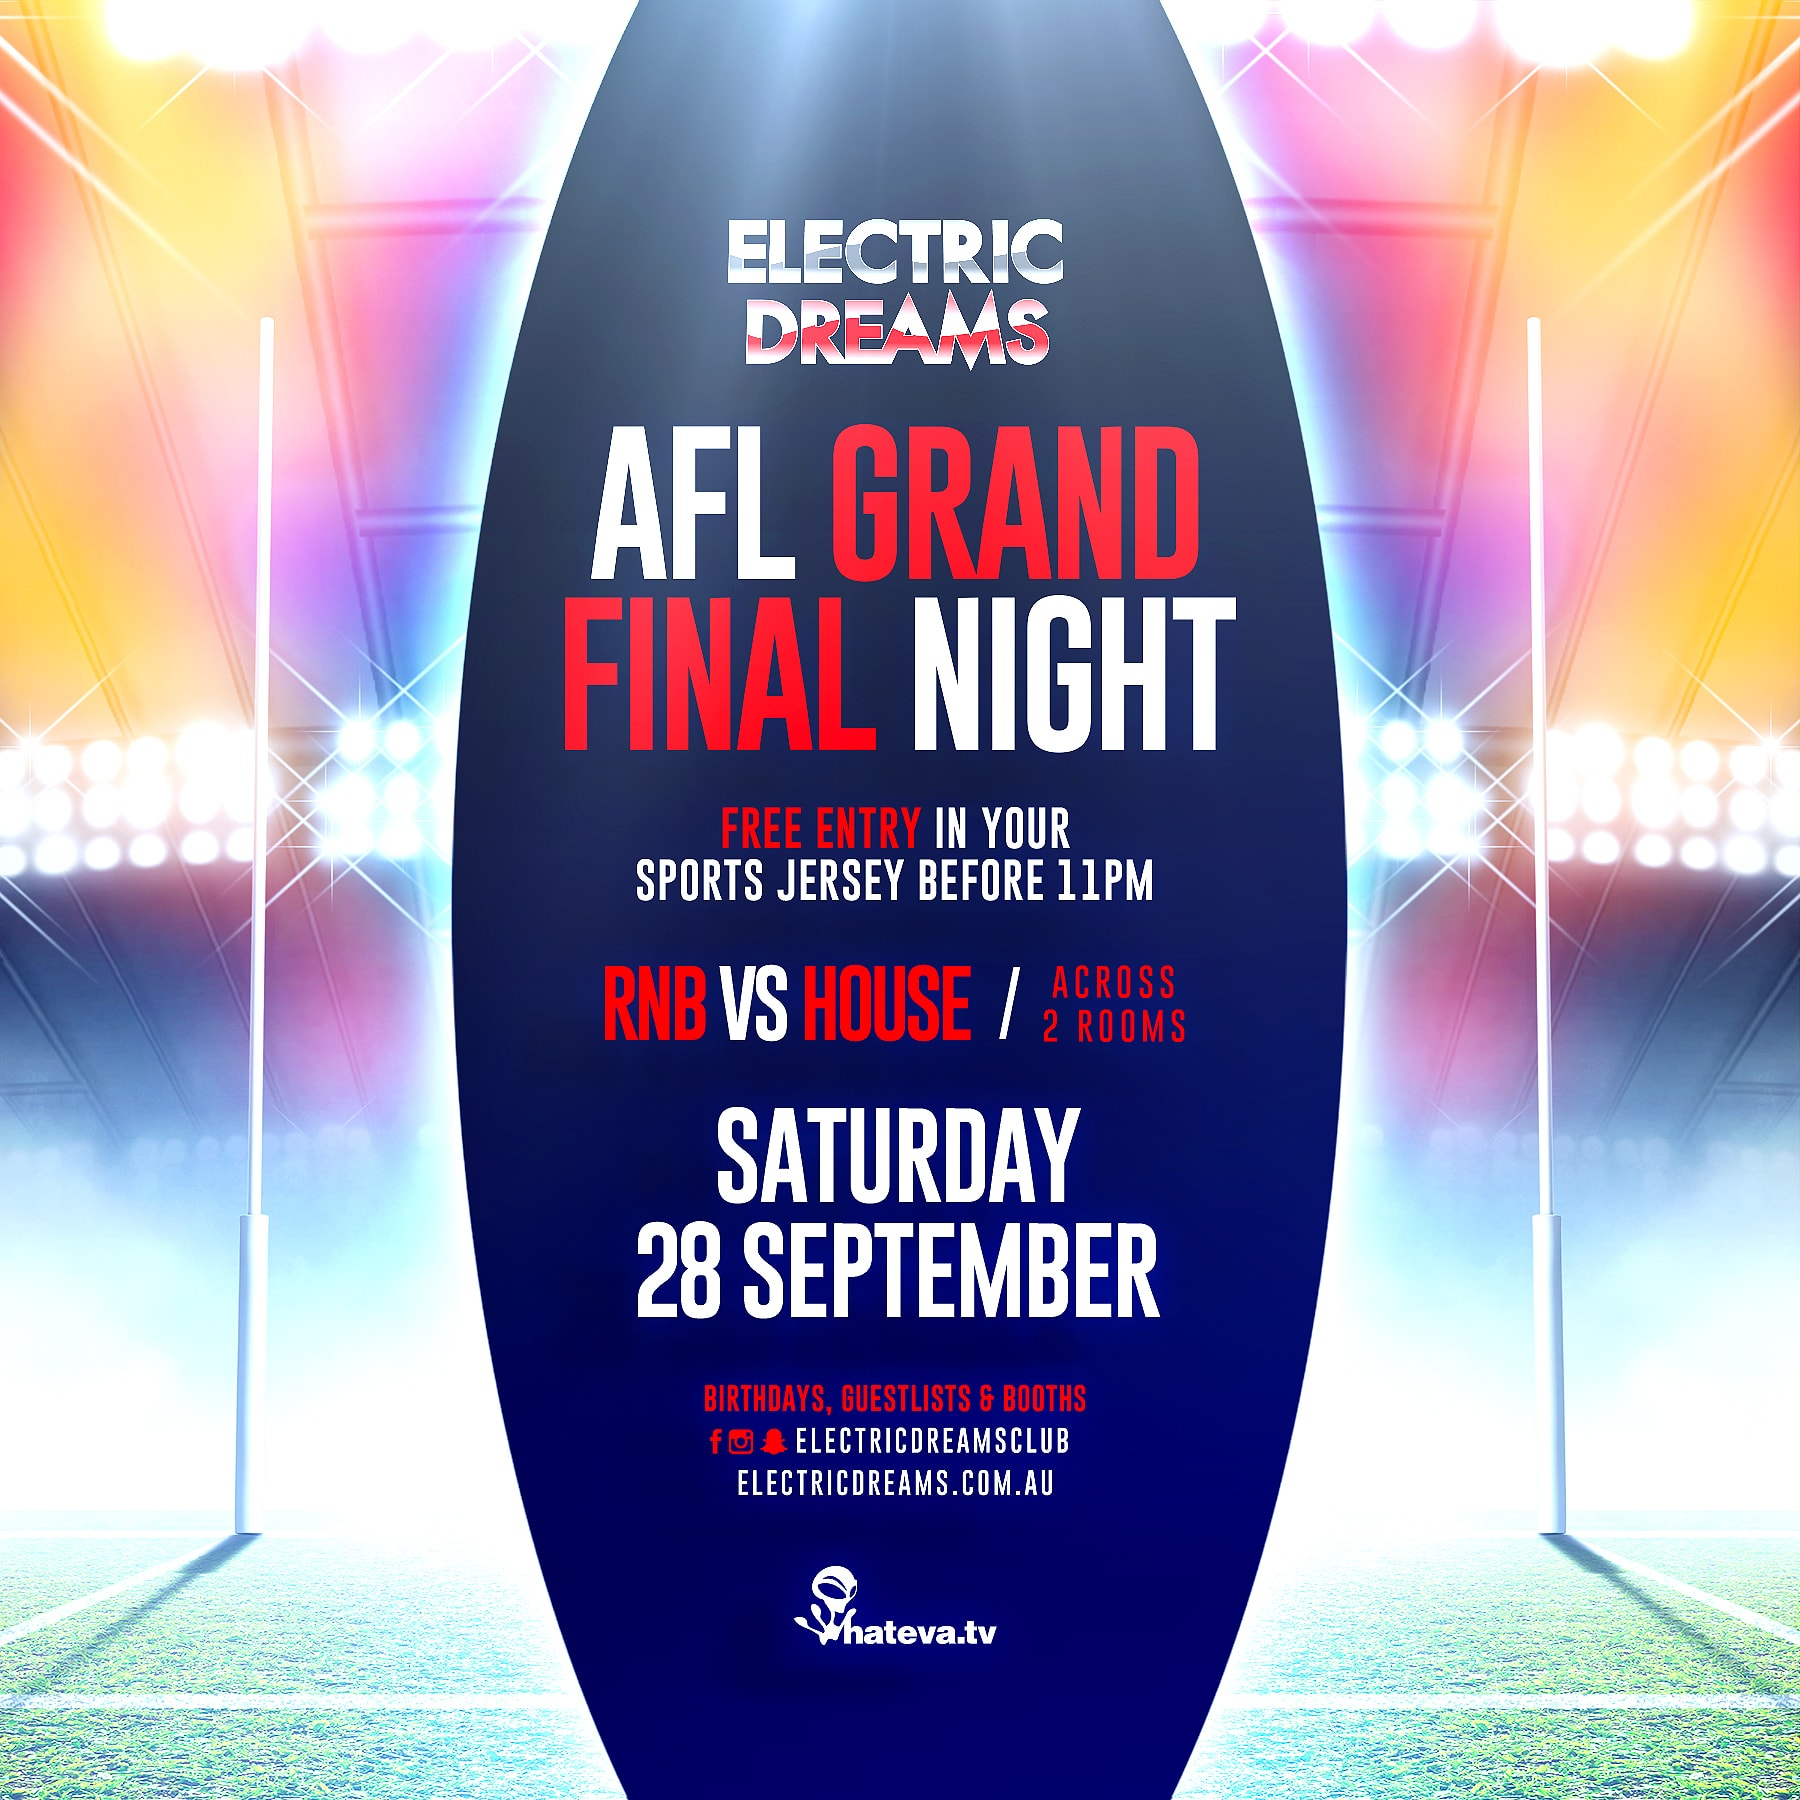 ED_September-28_AFL-Grand-Final_V1 (1)-min.jpg